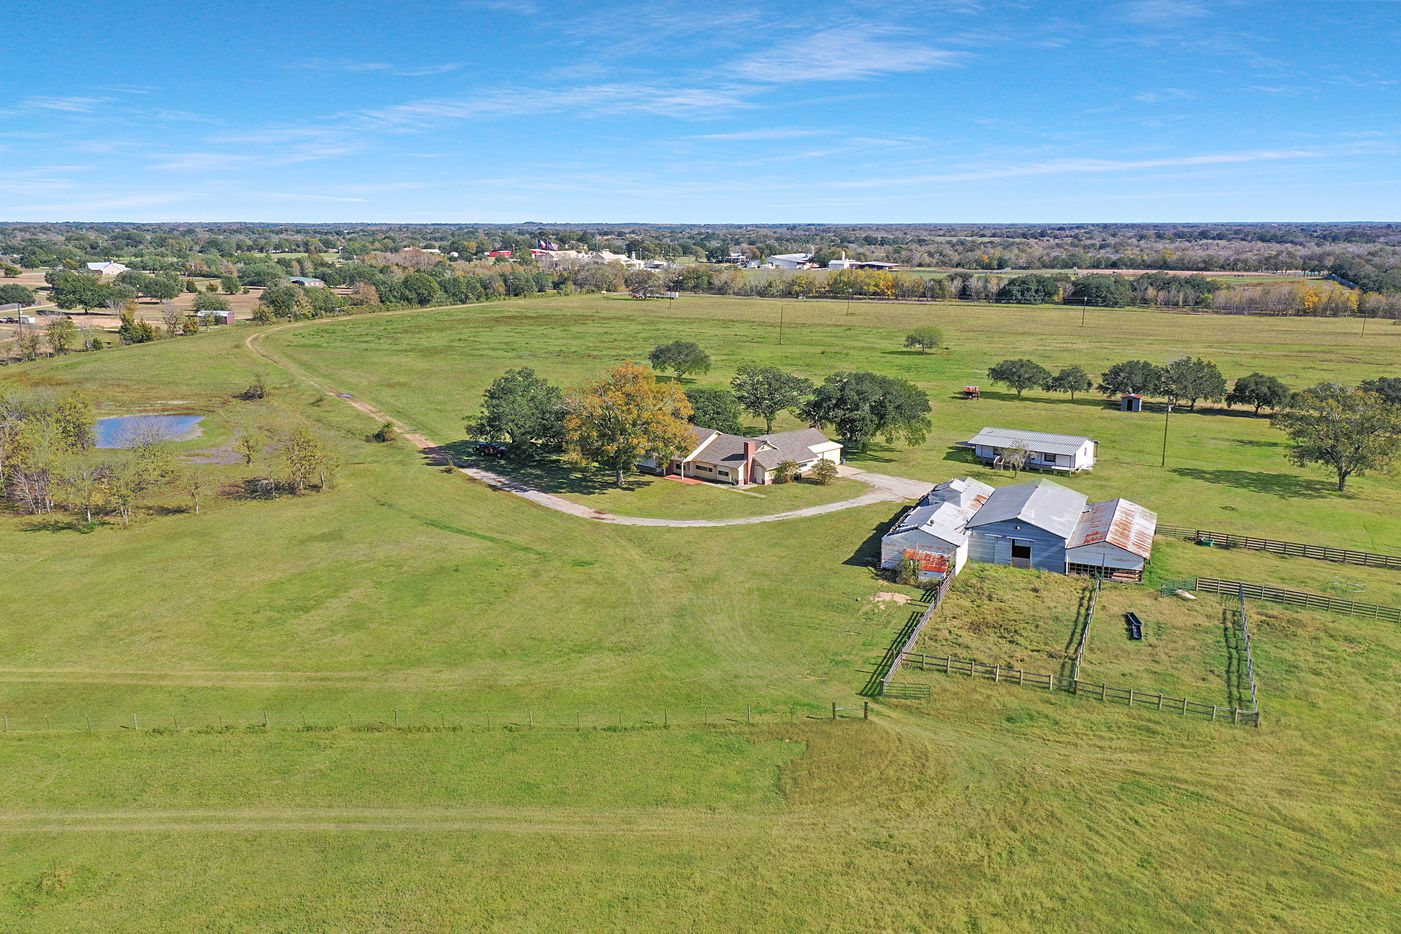 Take a look at this 44,602-square-foot home at 9950 Palestine Road in Brenham. The home sits on more than 230 acres.